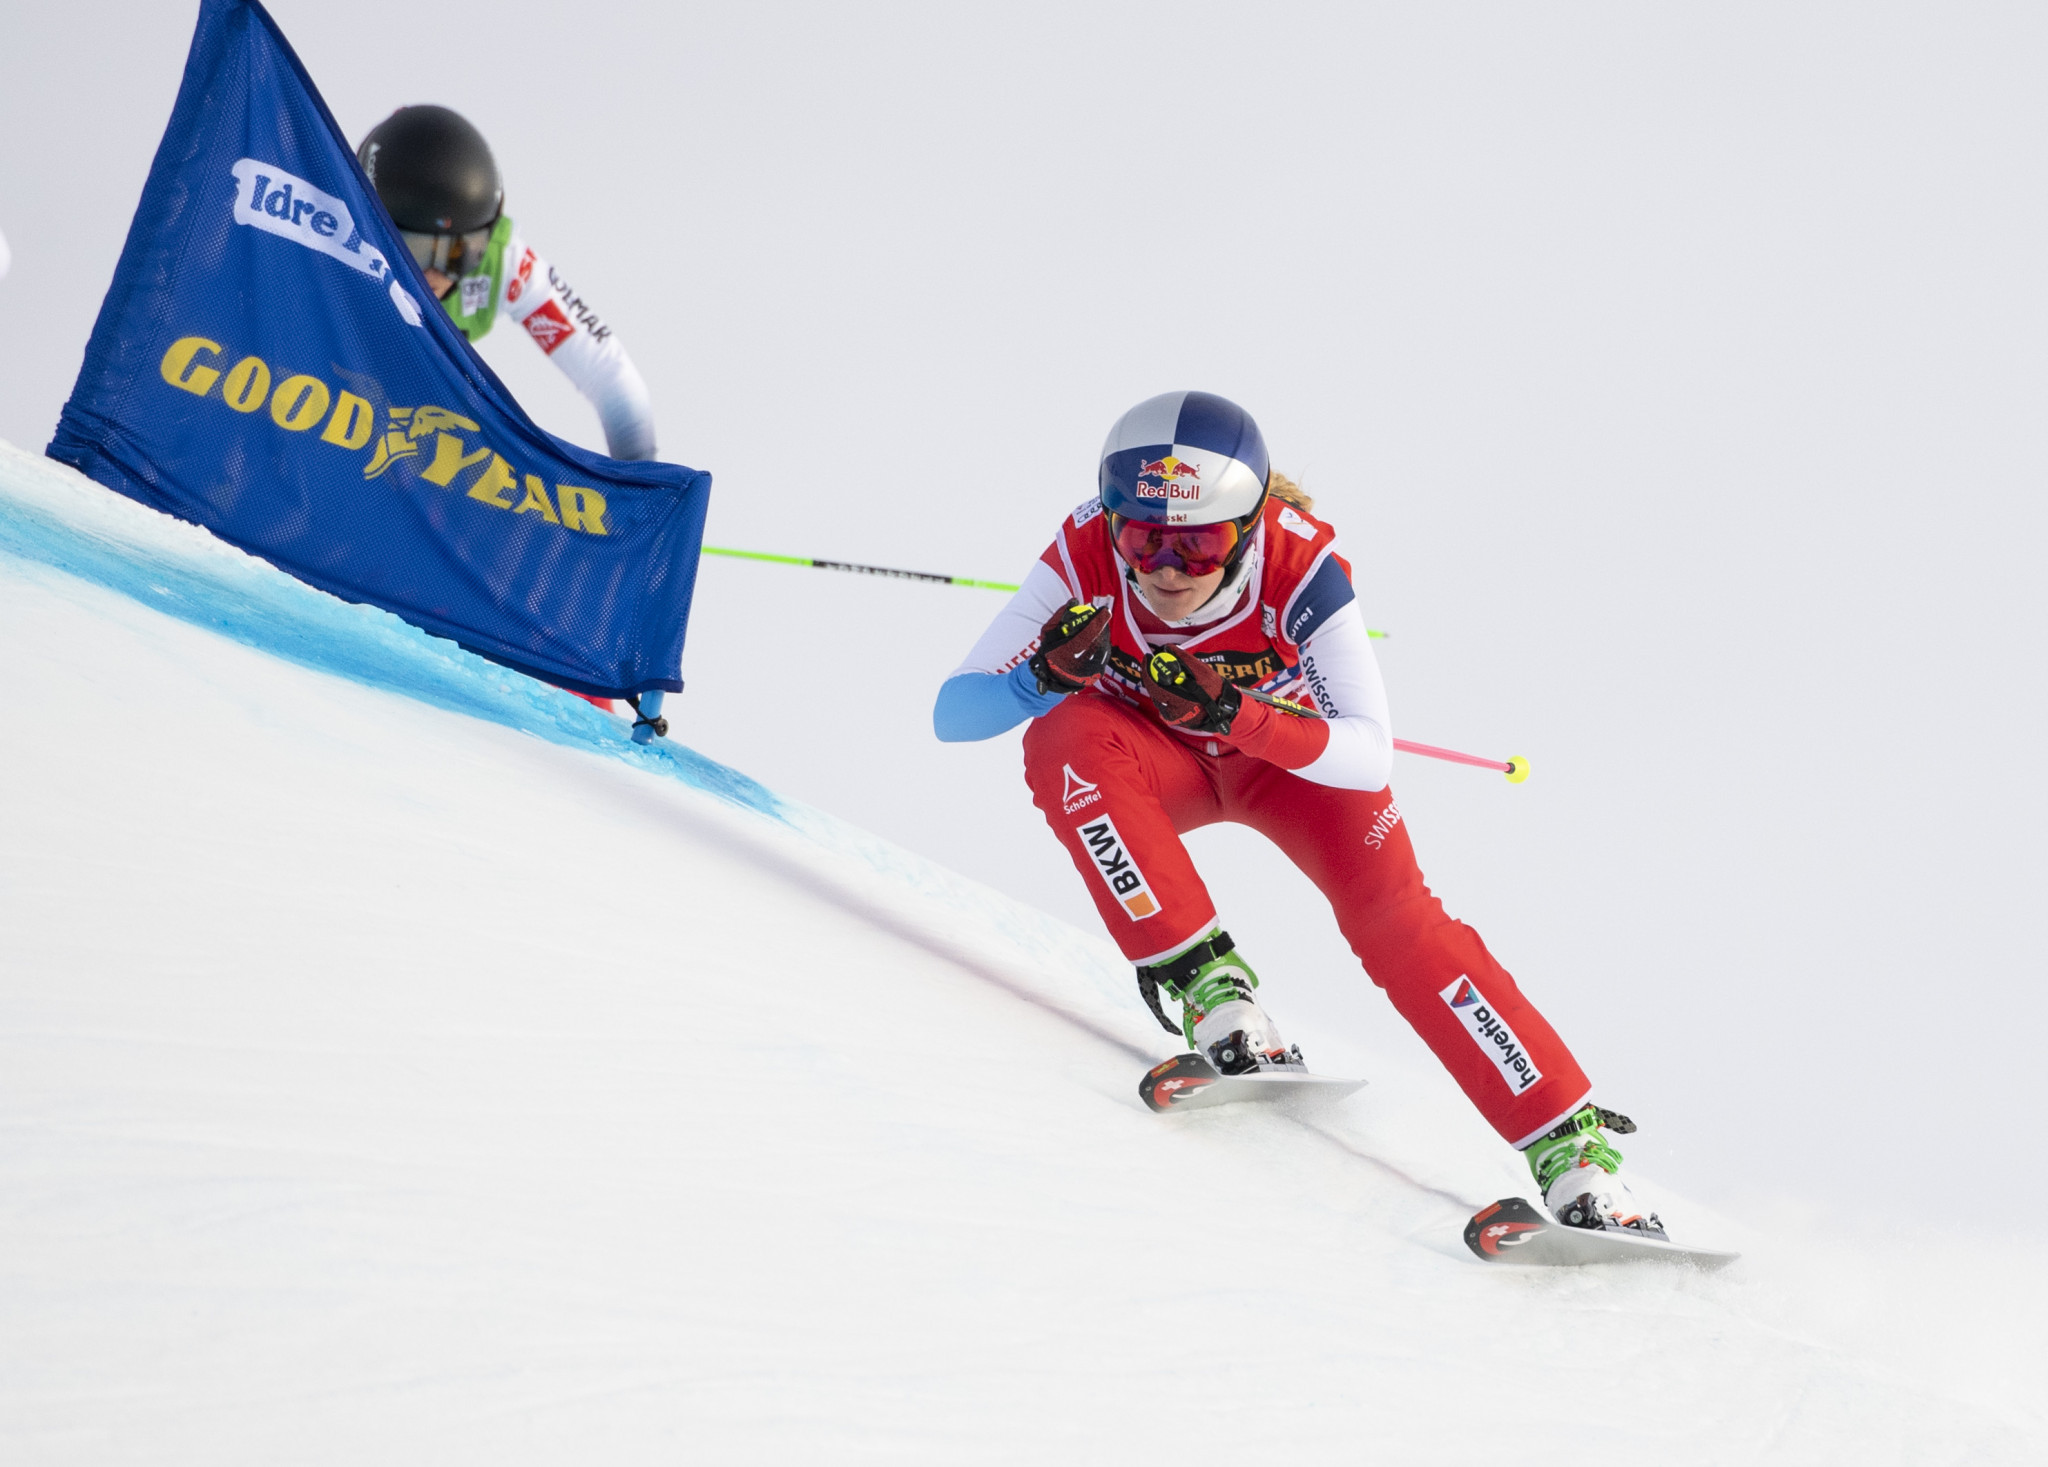 Smith targets further FIS Ski Cross World Cup success in Sunny Valley